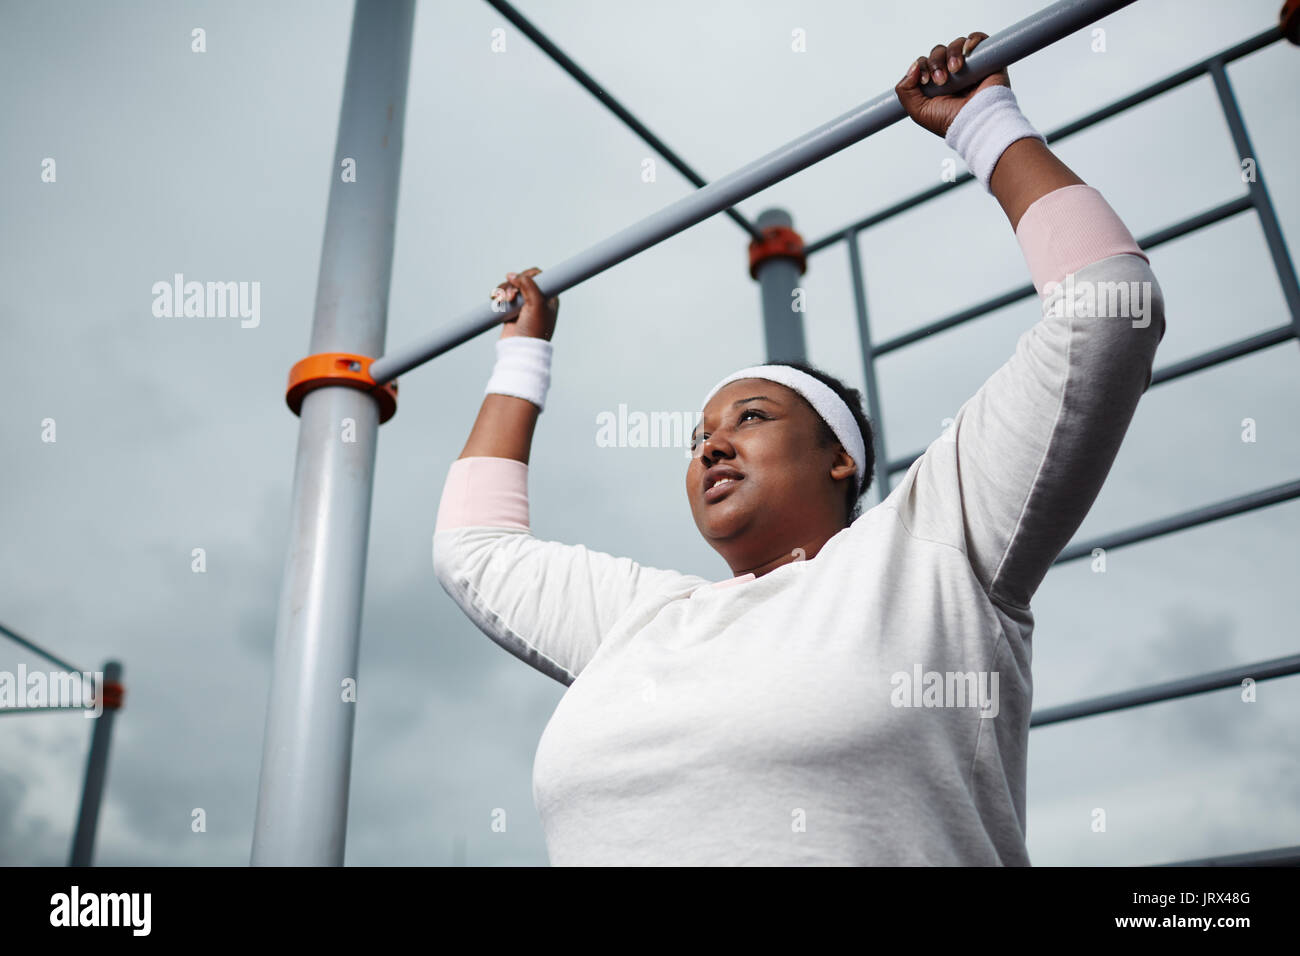 Determined overweight African woman practicing pull-up exercise outdoors - Stock Image